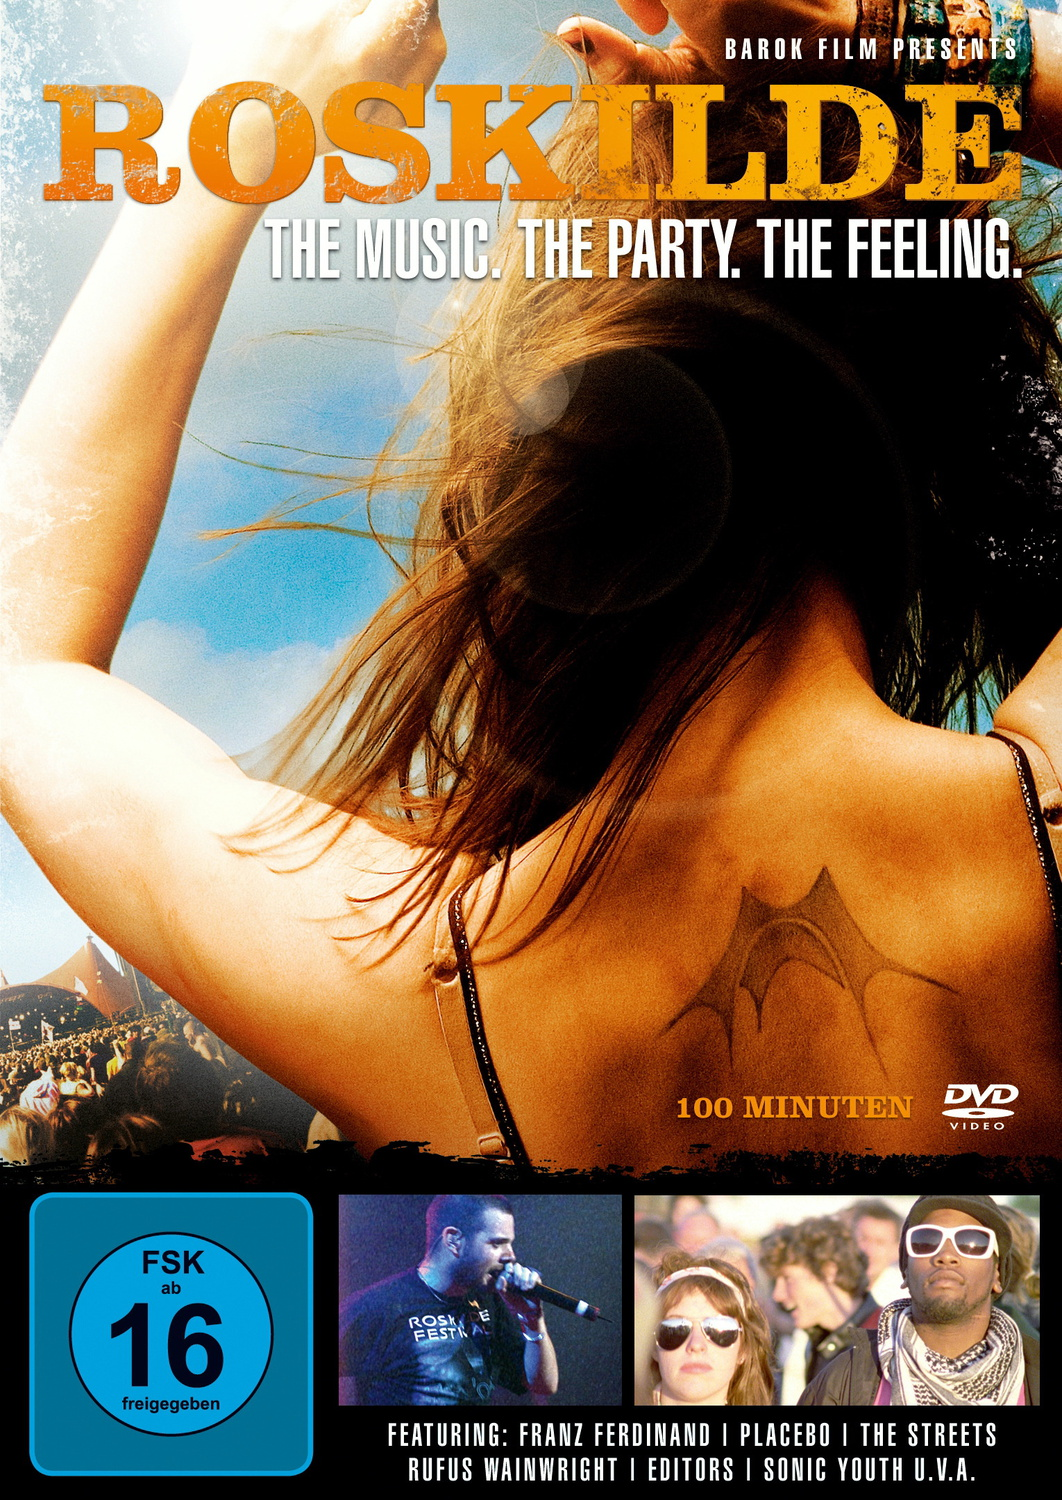 Roskilde - The Music. The Party. The Feeling